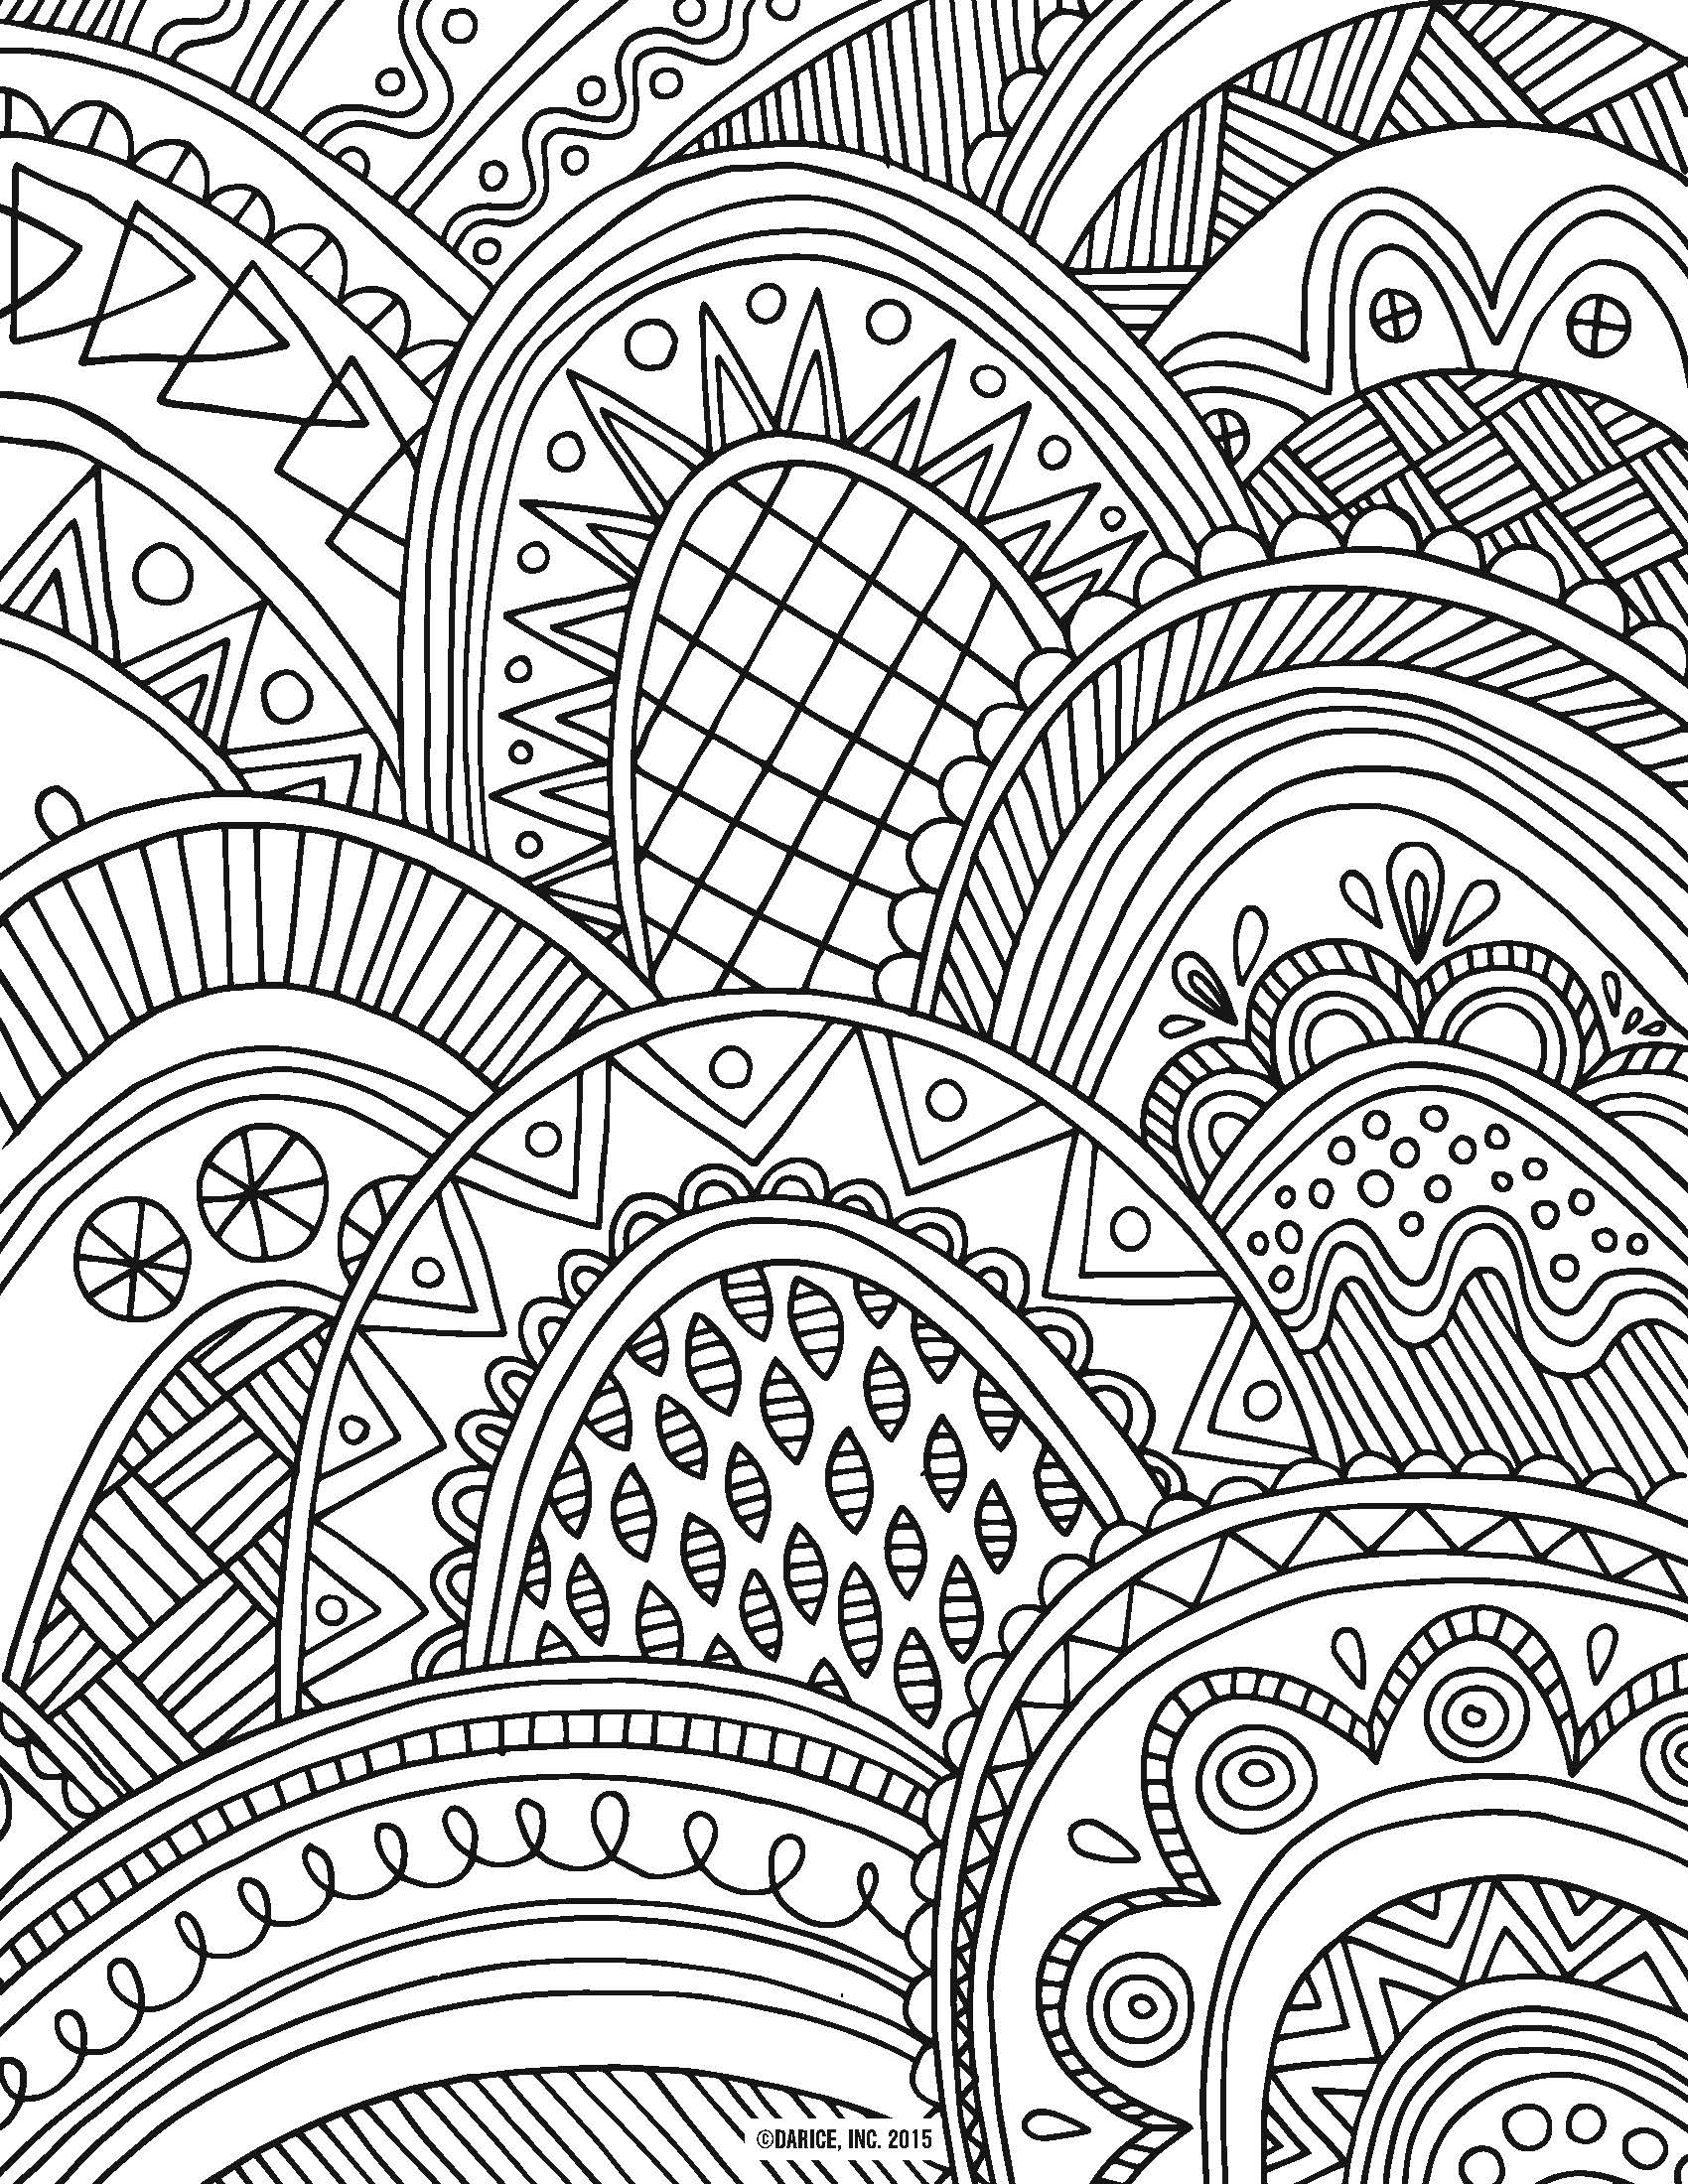 free coloring pages for adults printable free printable geometric coloring pages for adults free pages for coloring adults printable